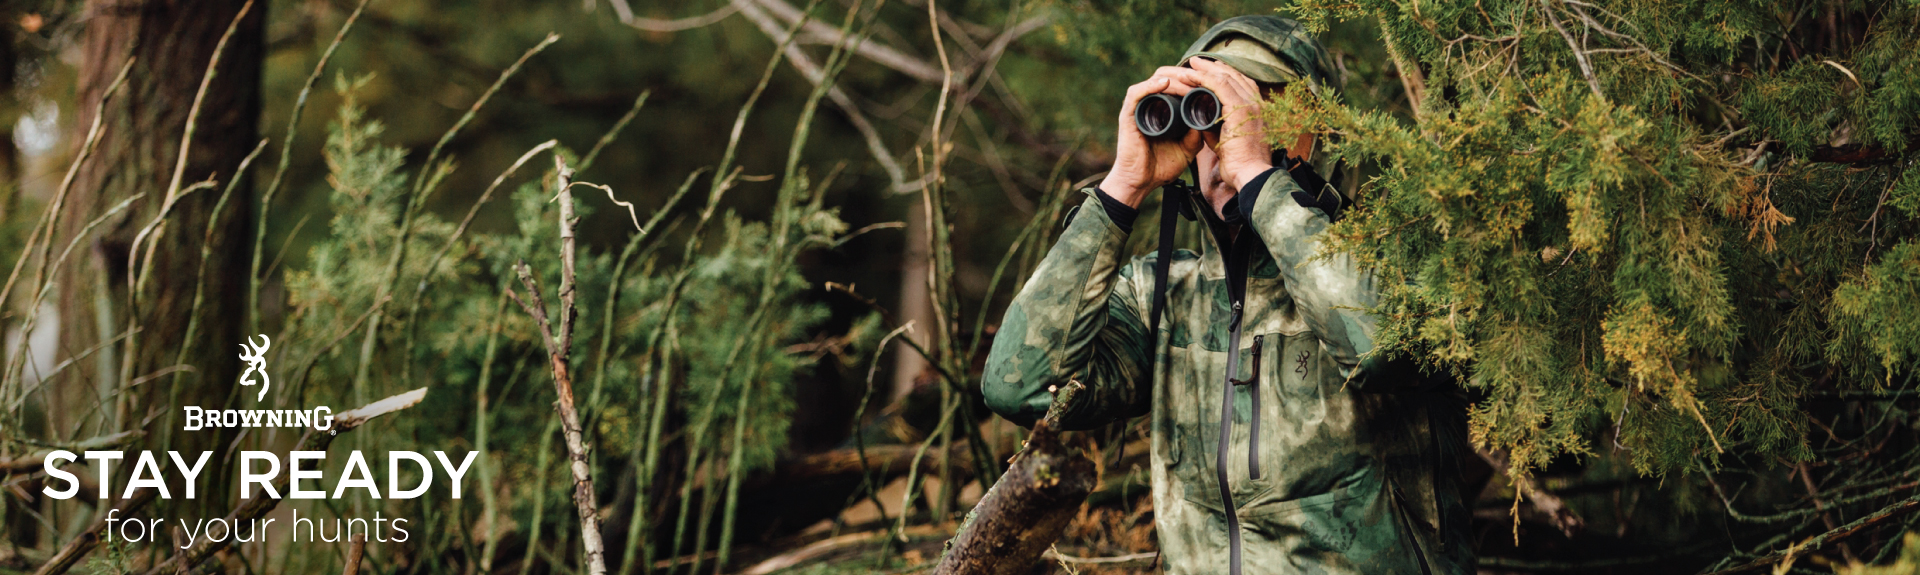 Get Ready for Hunting Season - Browning Shop Now